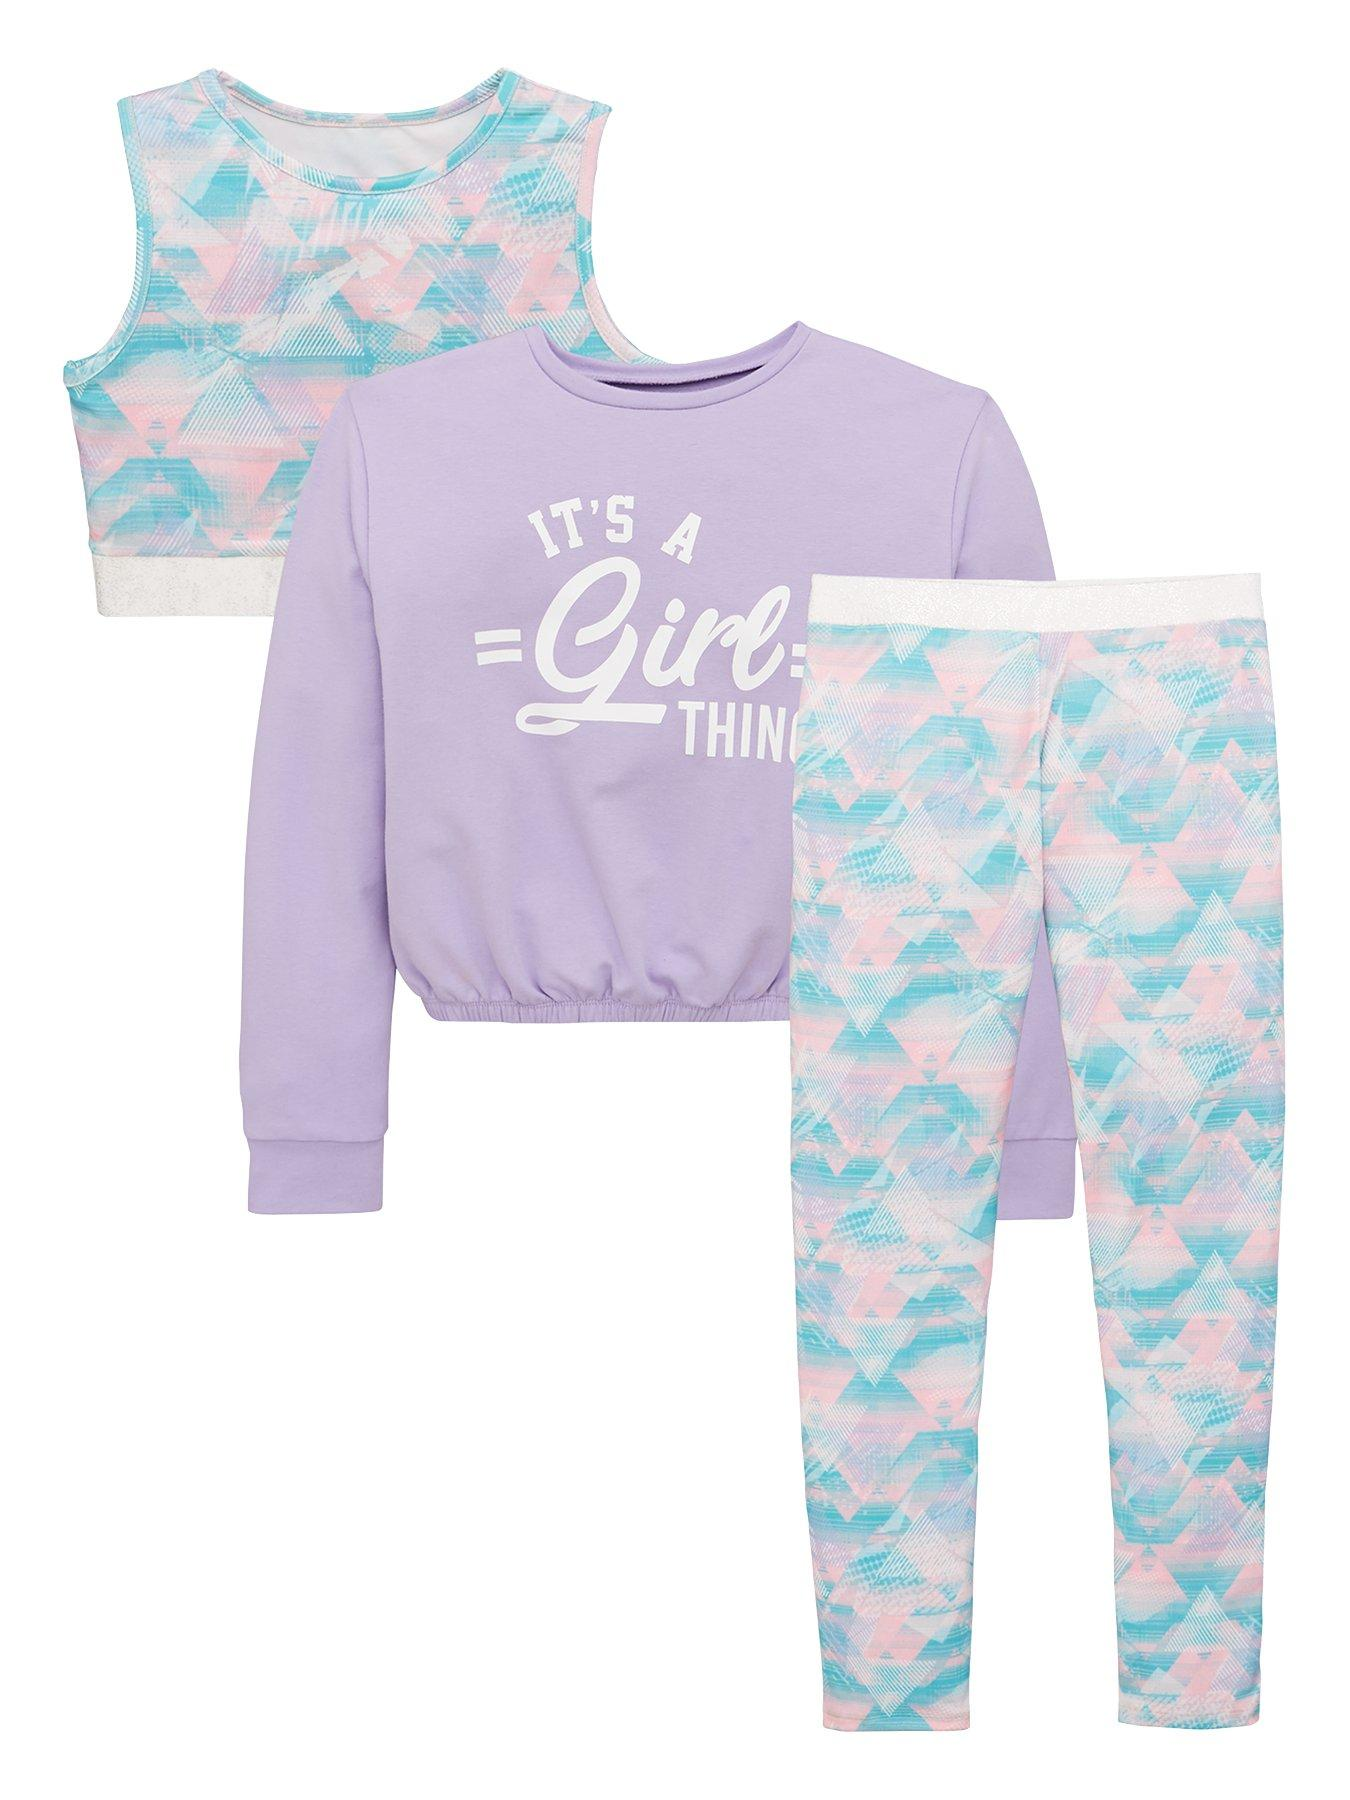 Outfits & Sets Baby & Toddler Clothing Objective Girls Kenzo Trousers 6mths 2019 New Fashion Style Online